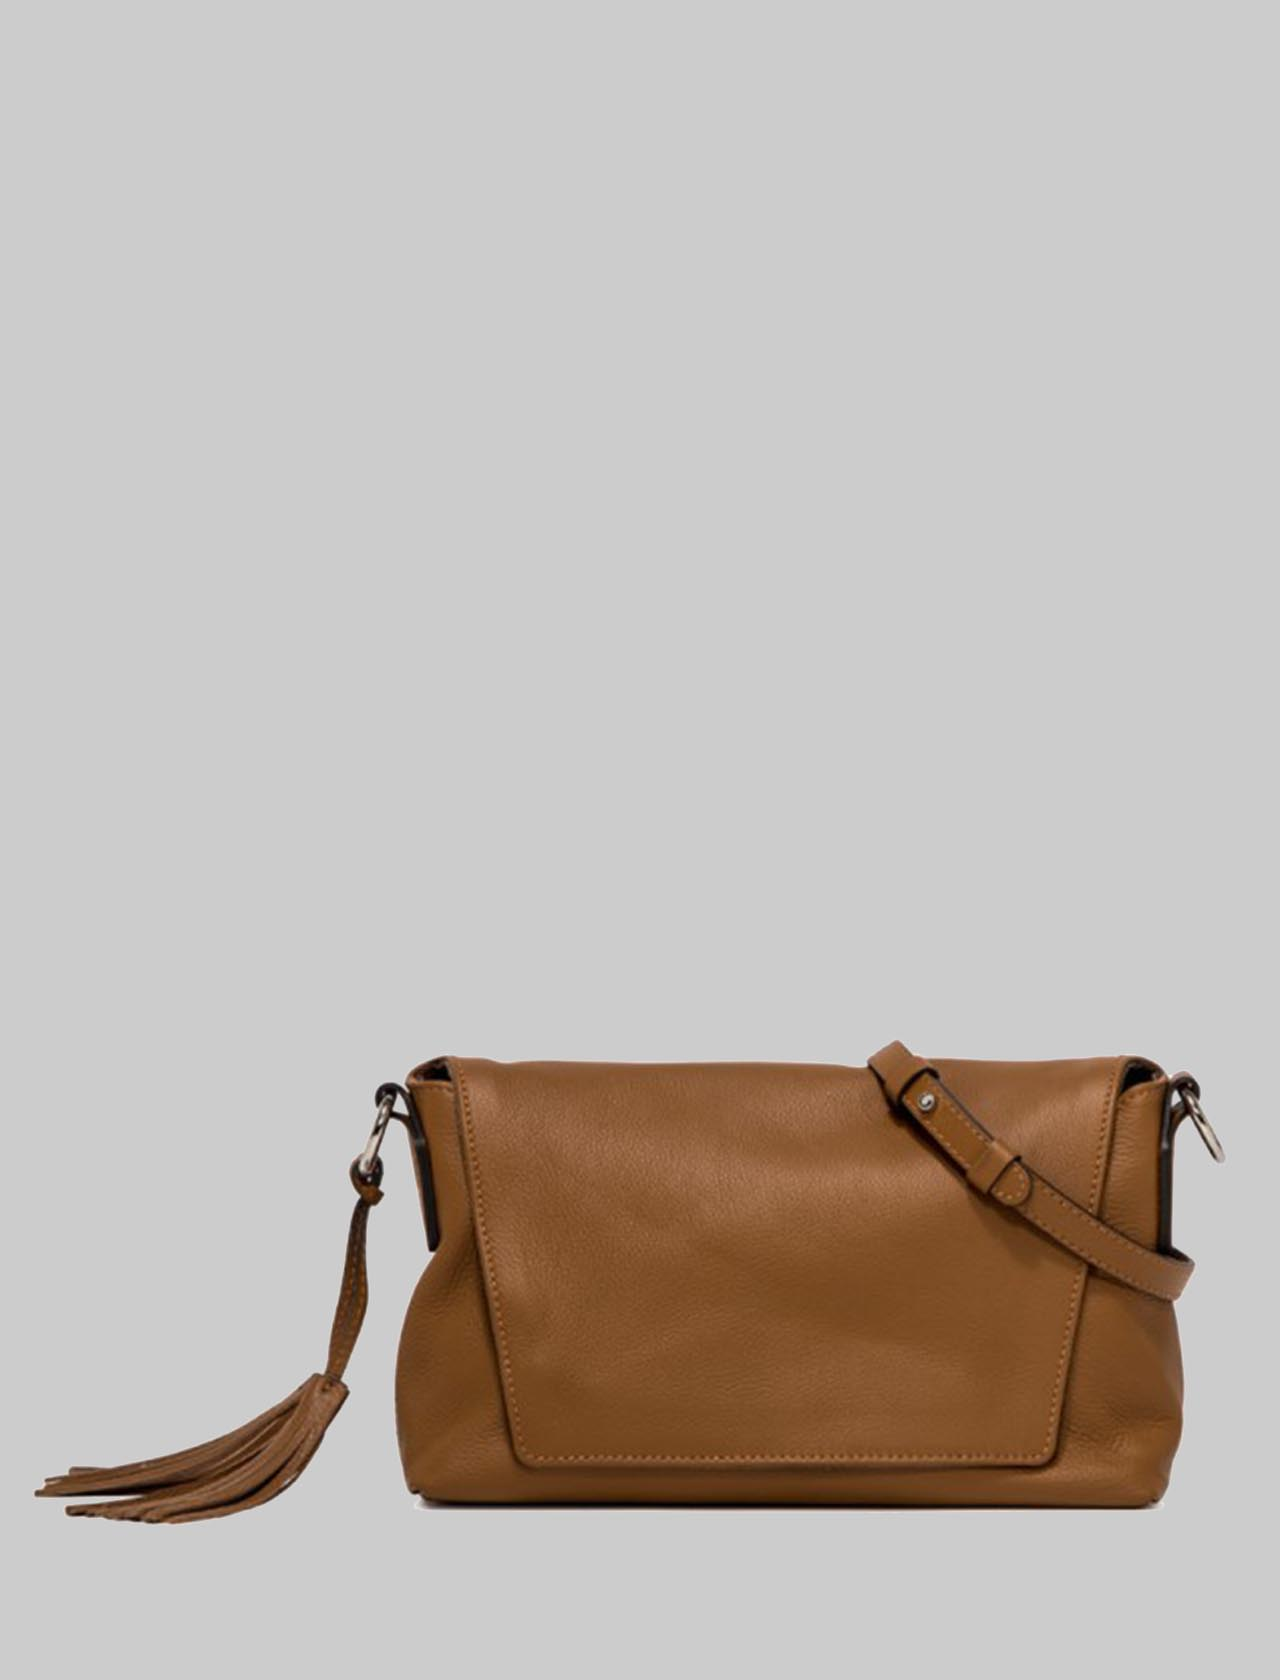 Africa Woman Shoulder Bag In Tan Leather With Chain Handle And Adjustable And Removable Shoulder Strap Gianni Chiarini | Bags and backpacks | BS7786206